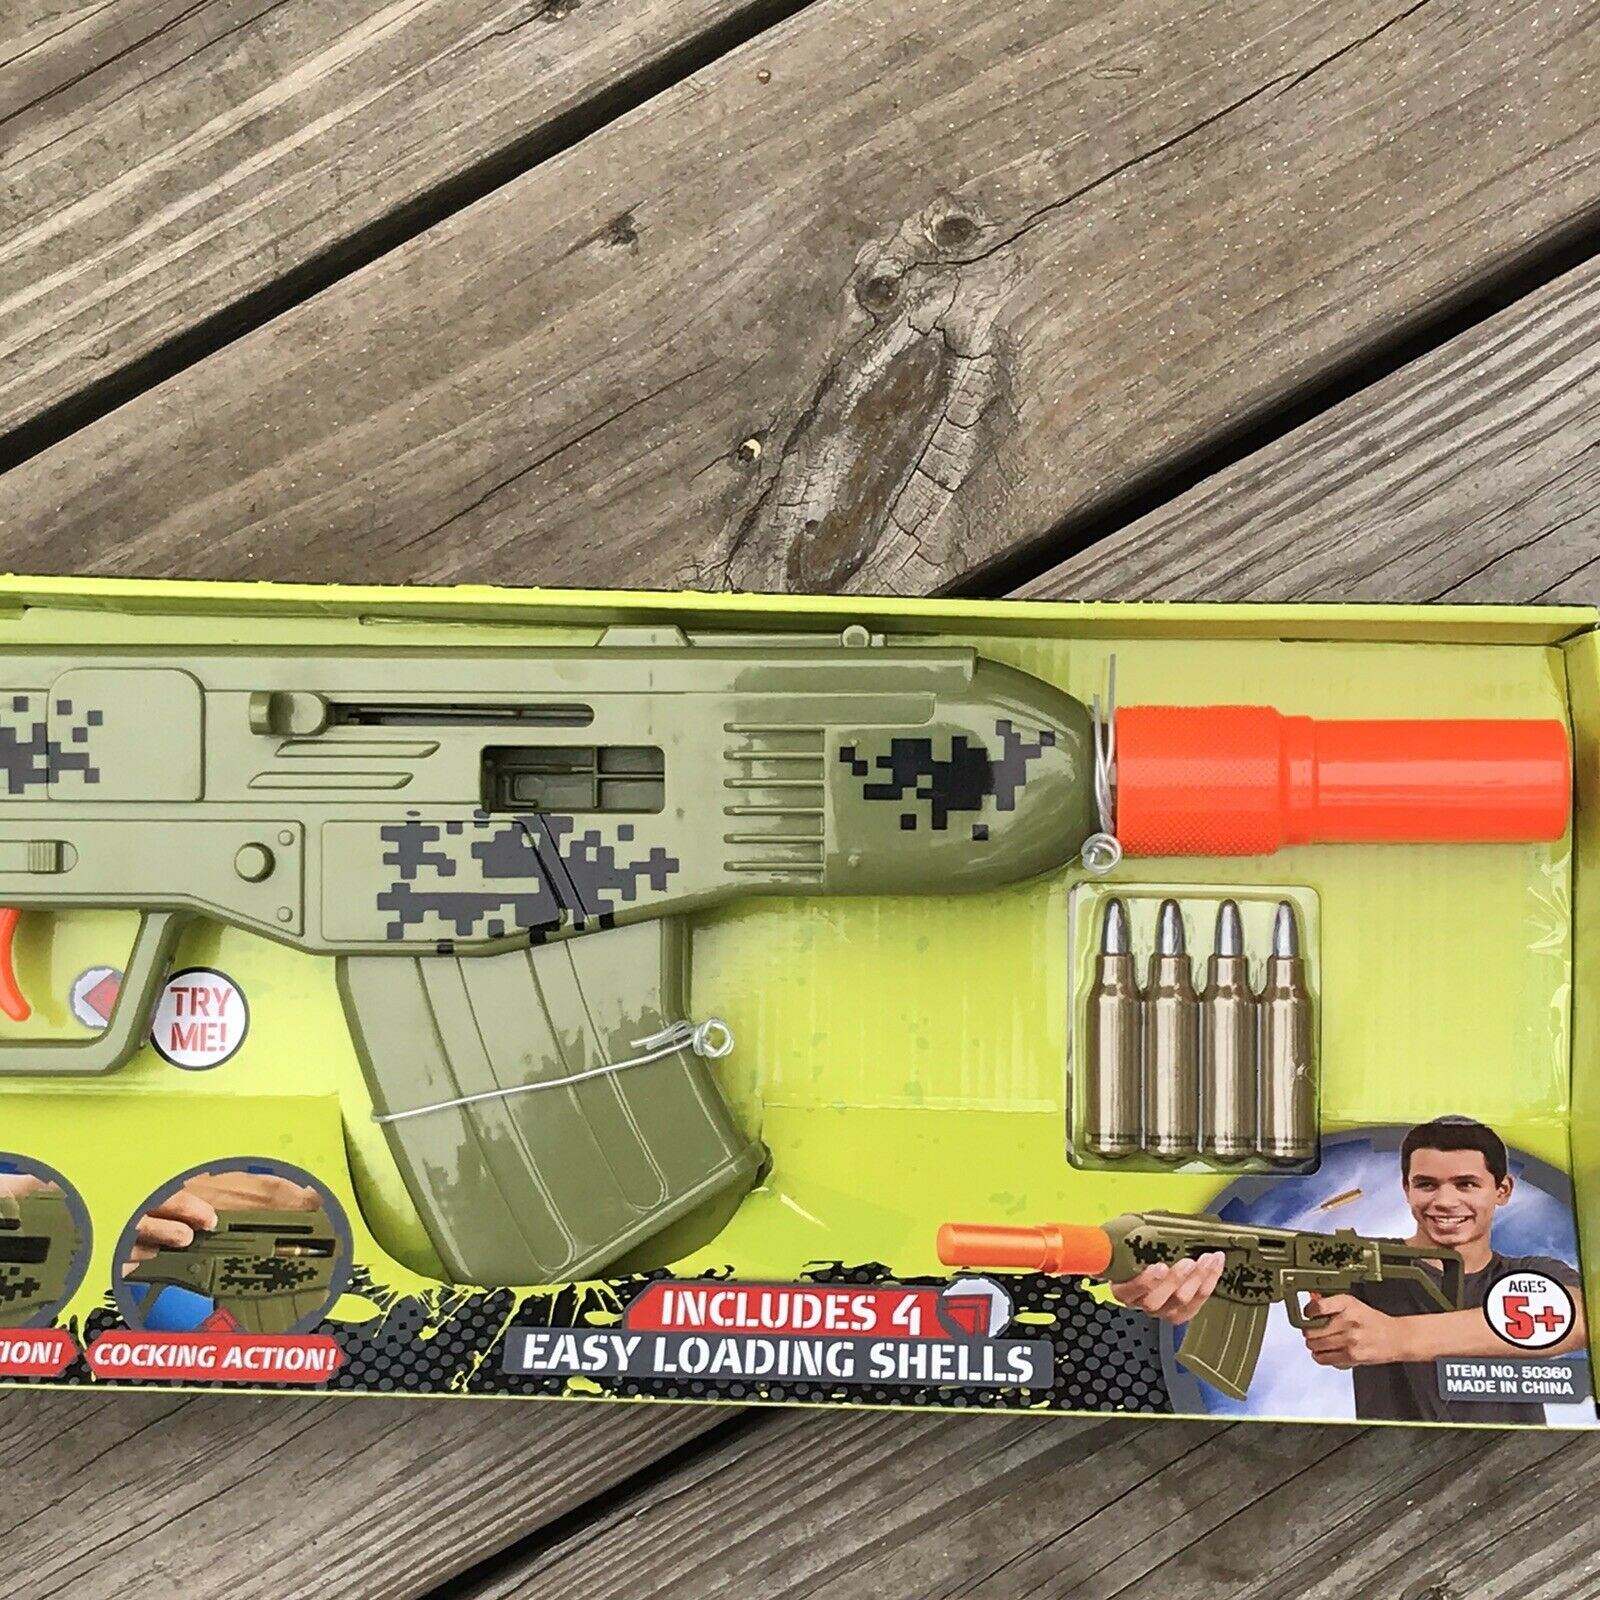 Retro Machine Pistol Green Combat Action Sounds Toy Gun ejecting shells cocking